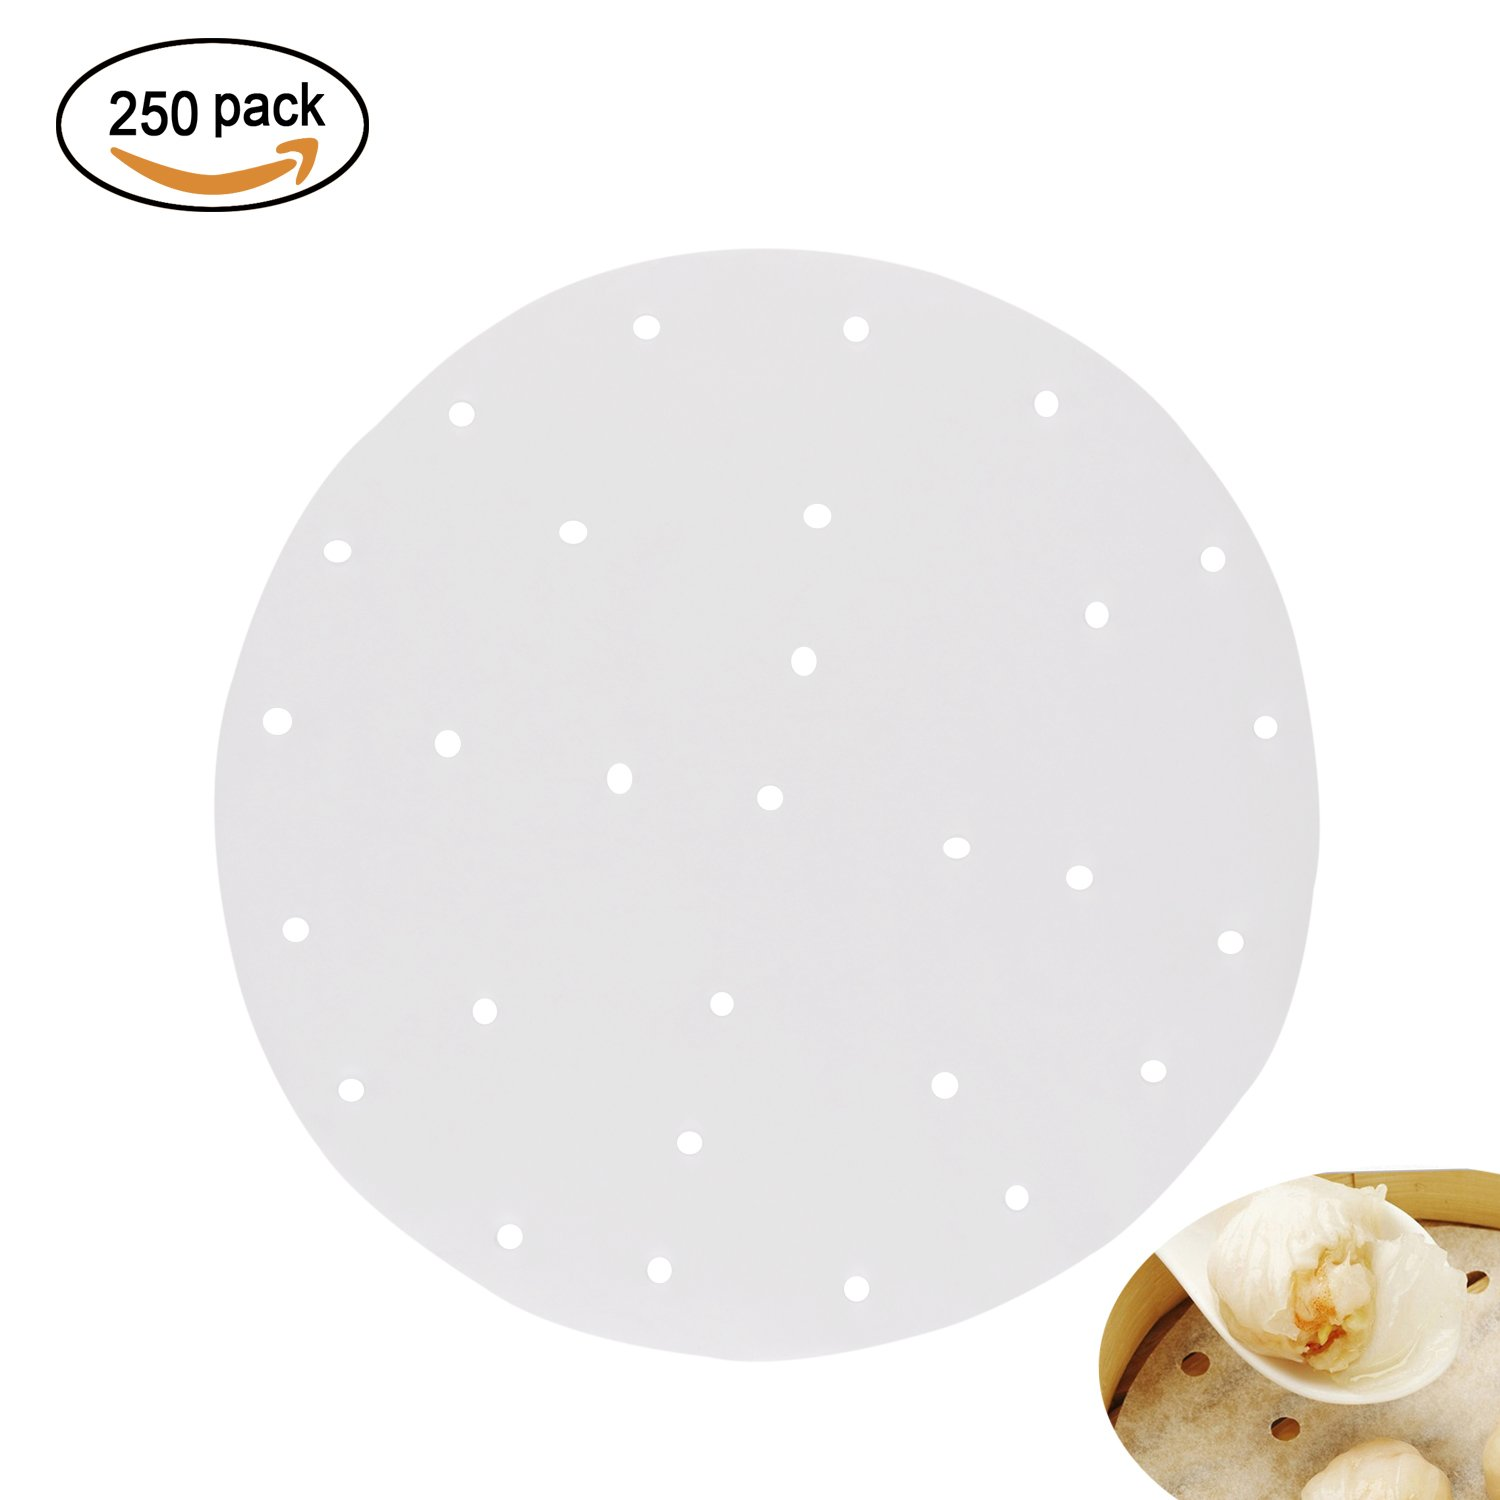 250pcs Perforated Parchment Round Bamboo Steamer Paper Liners,9 Inch In Diameter Suitable for Air Fryer,Cooking, Steaming Basket, Vegetables, Dim Sum,Rice